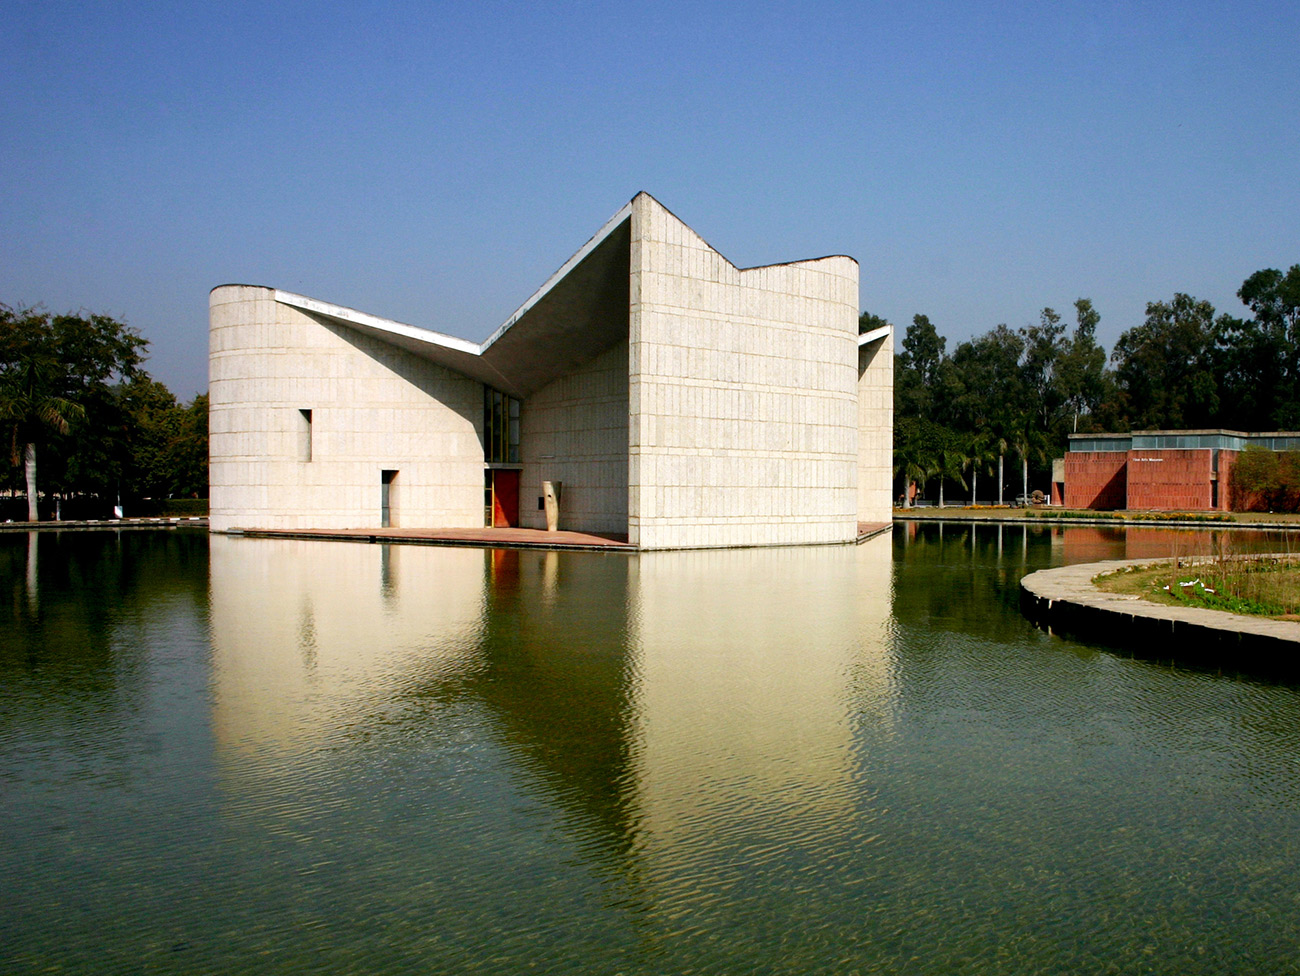 Asymmetrical white cement building that appears to sit directly on a lake